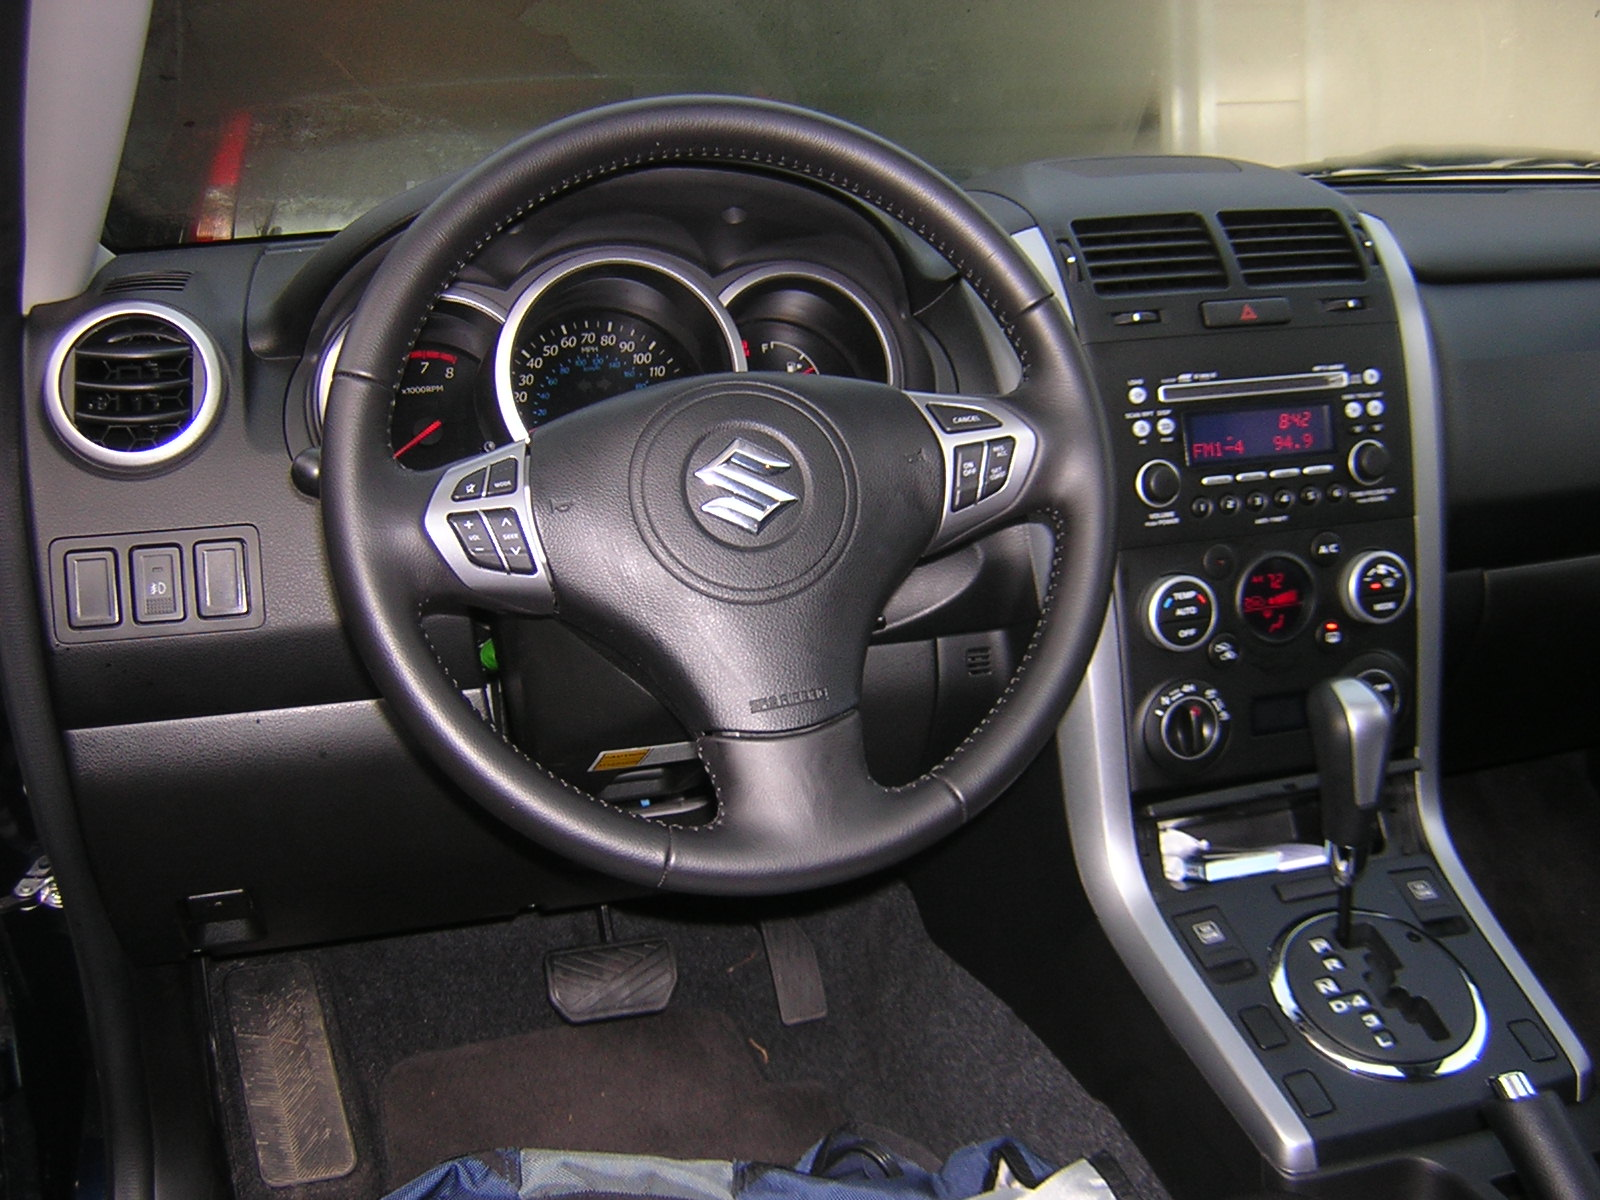 Interior materials on the dash and console were a mix of nicely grained soft-touch plastics and nicely-grained hard plastics. The whole assembly of the ...